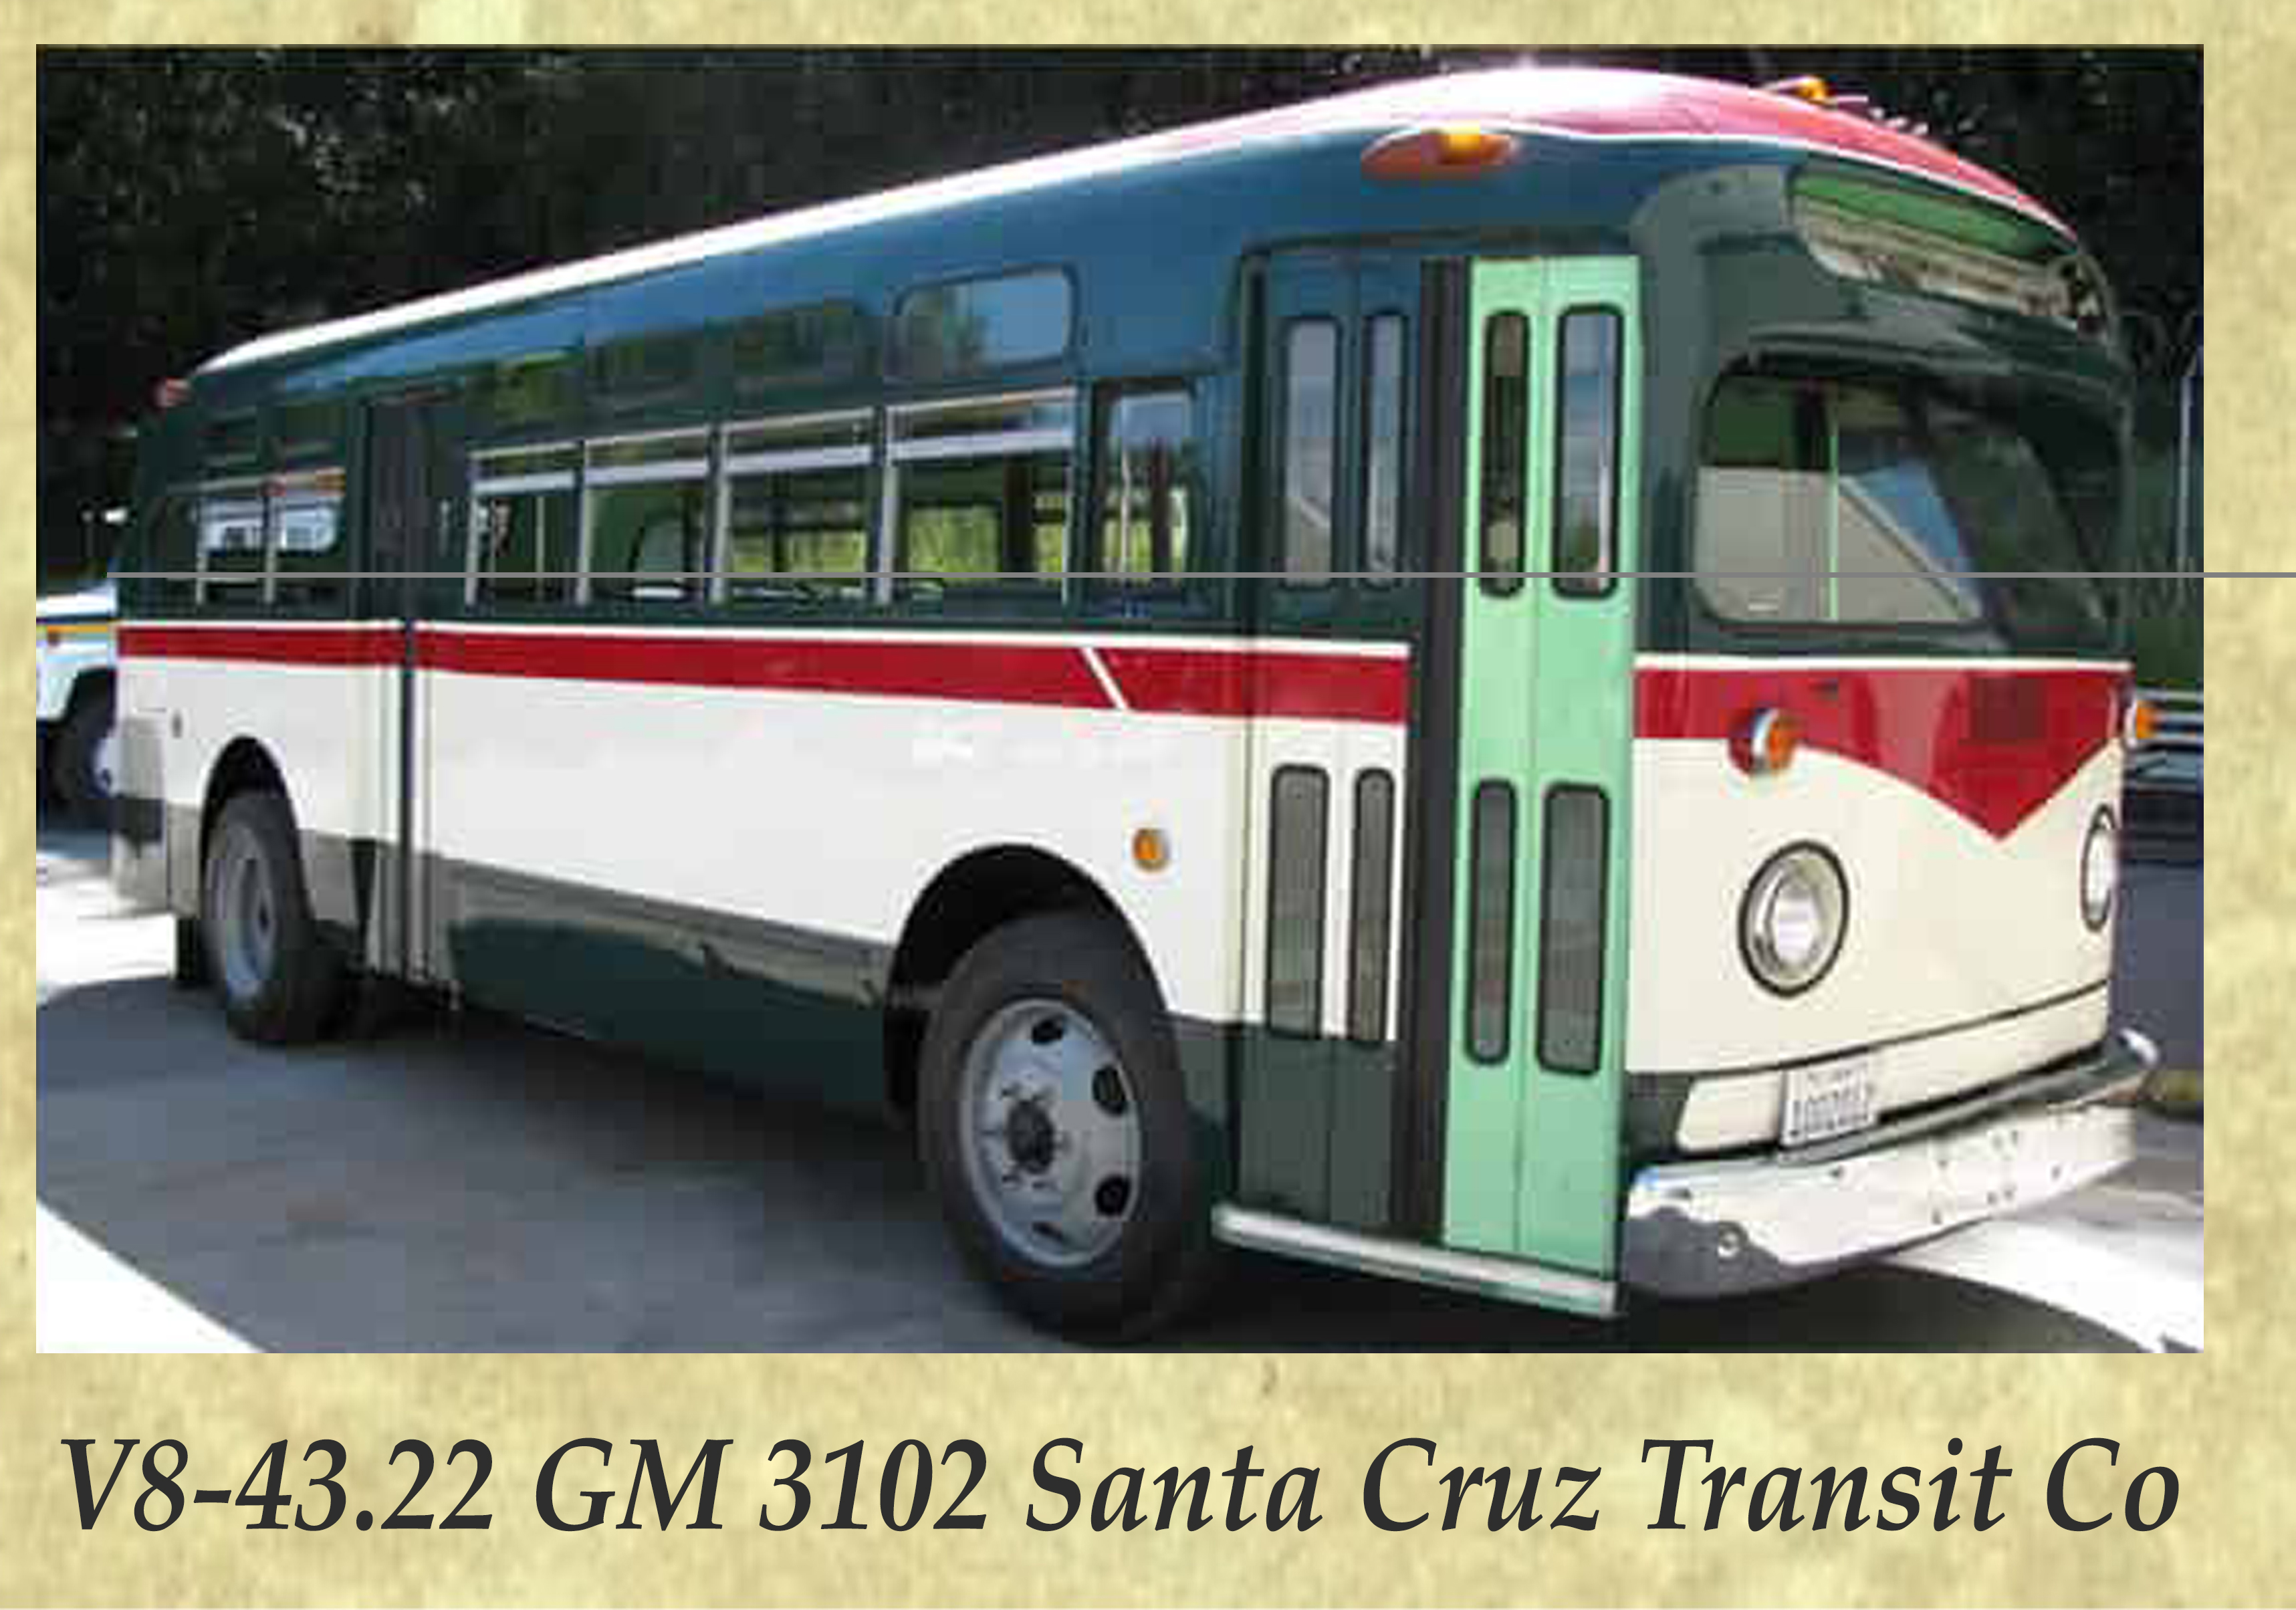 V8-43.22 GM 3102 Santa Cruz Transit Co